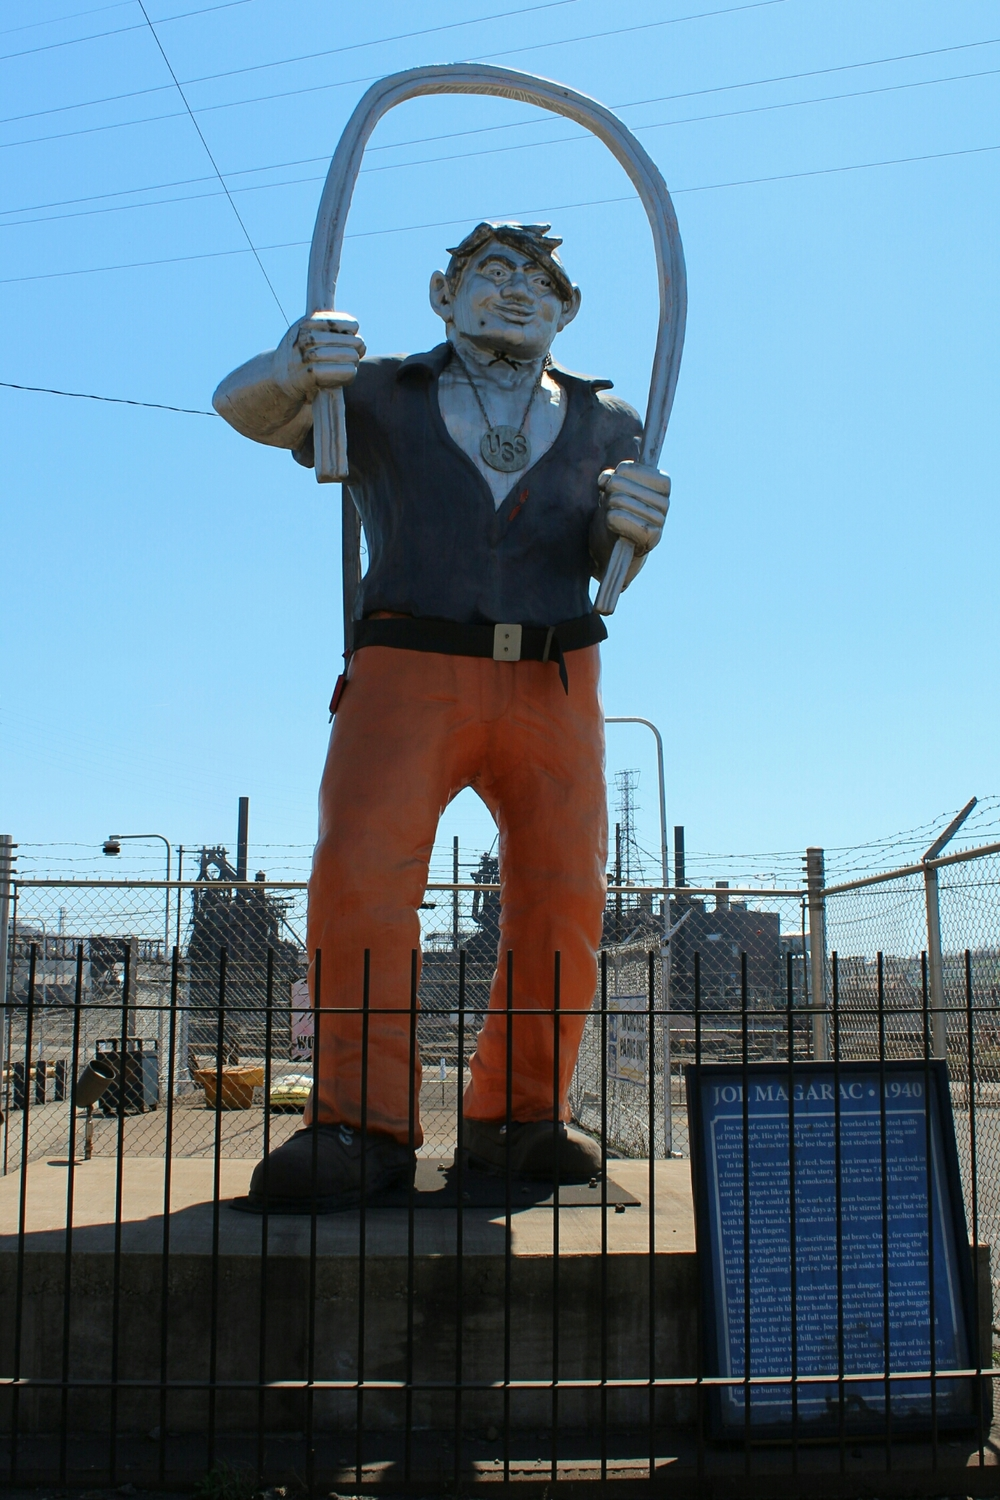 Joe Magarac statue